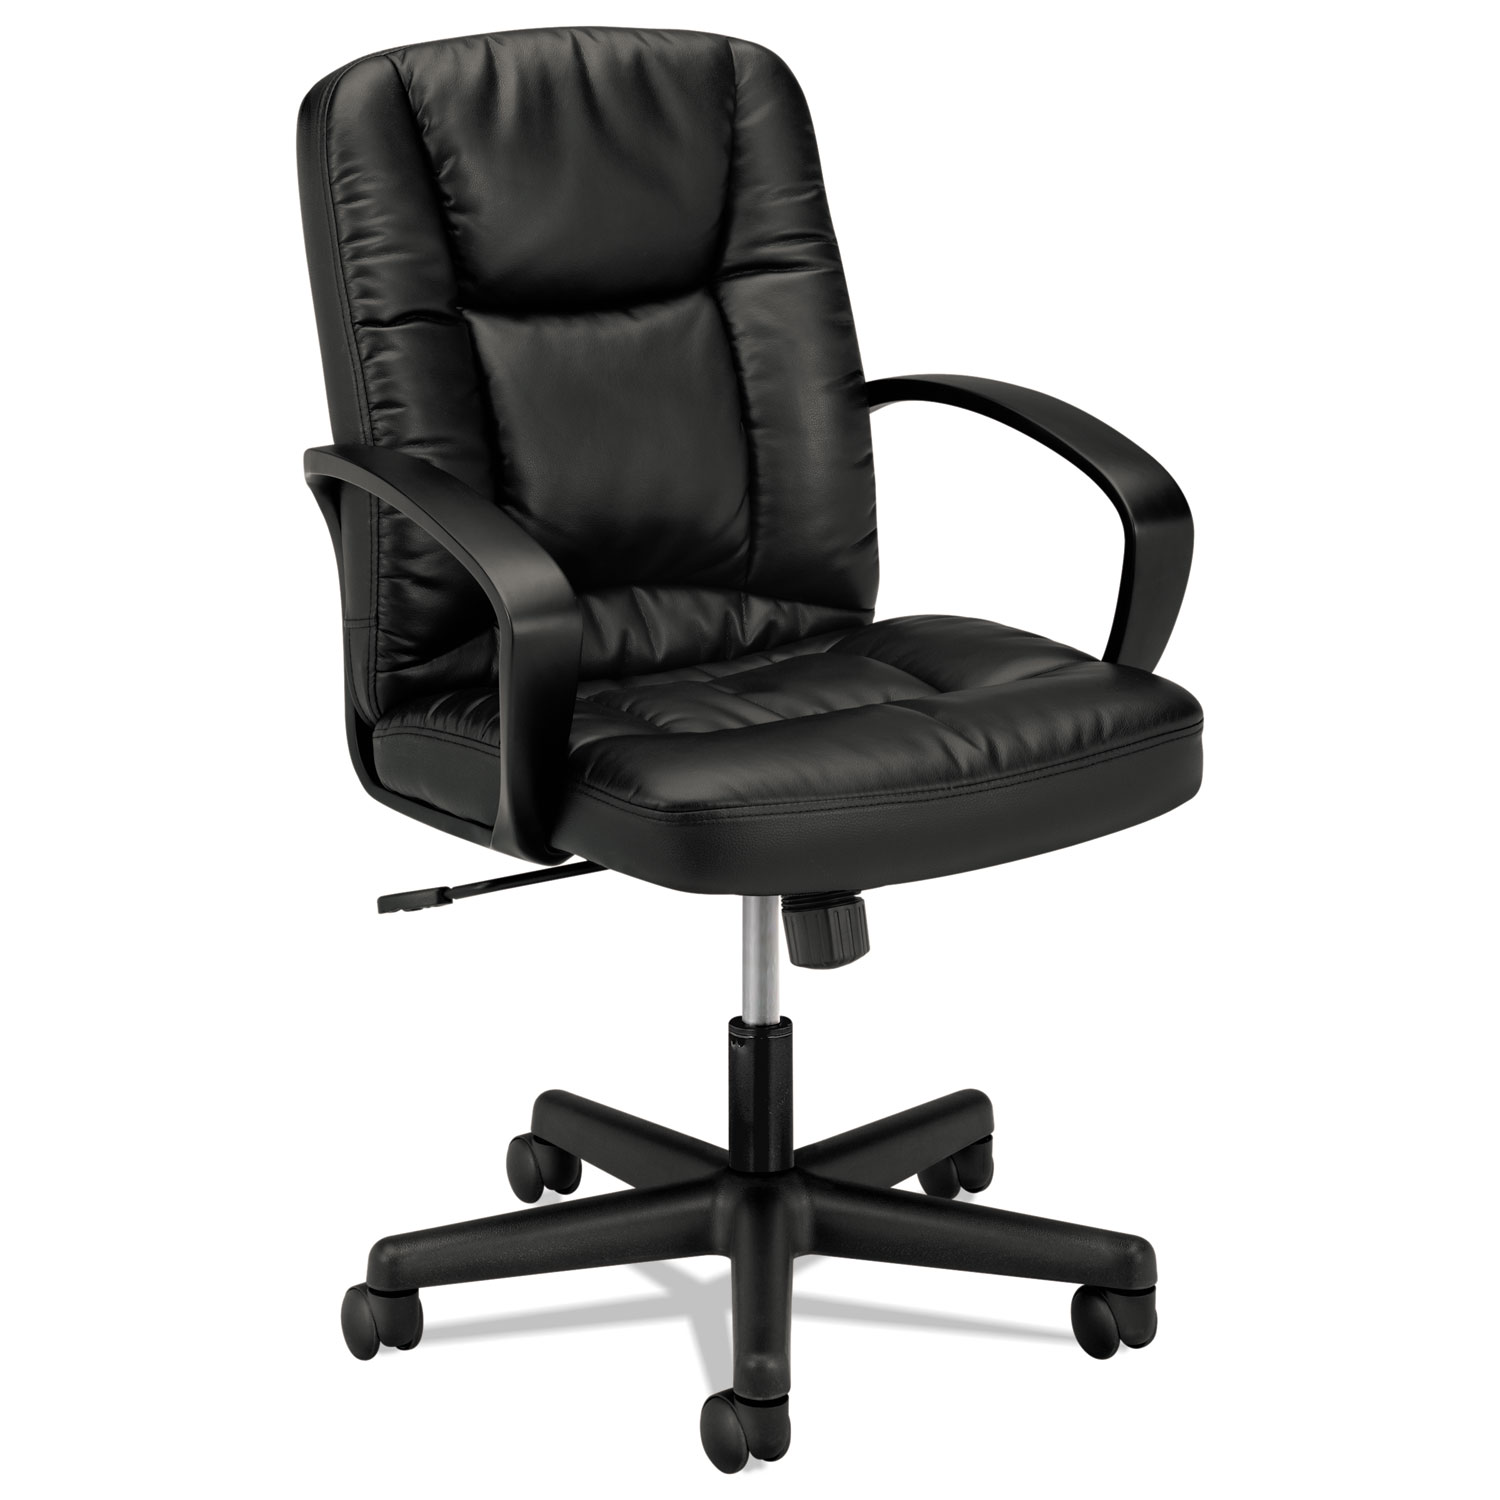 Astounding Hvl171 Executive Mid Back Leather Chair Supports Up To 250 Lbs Black Seat Black Back Black Base Spiritservingveterans Wood Chair Design Ideas Spiritservingveteransorg